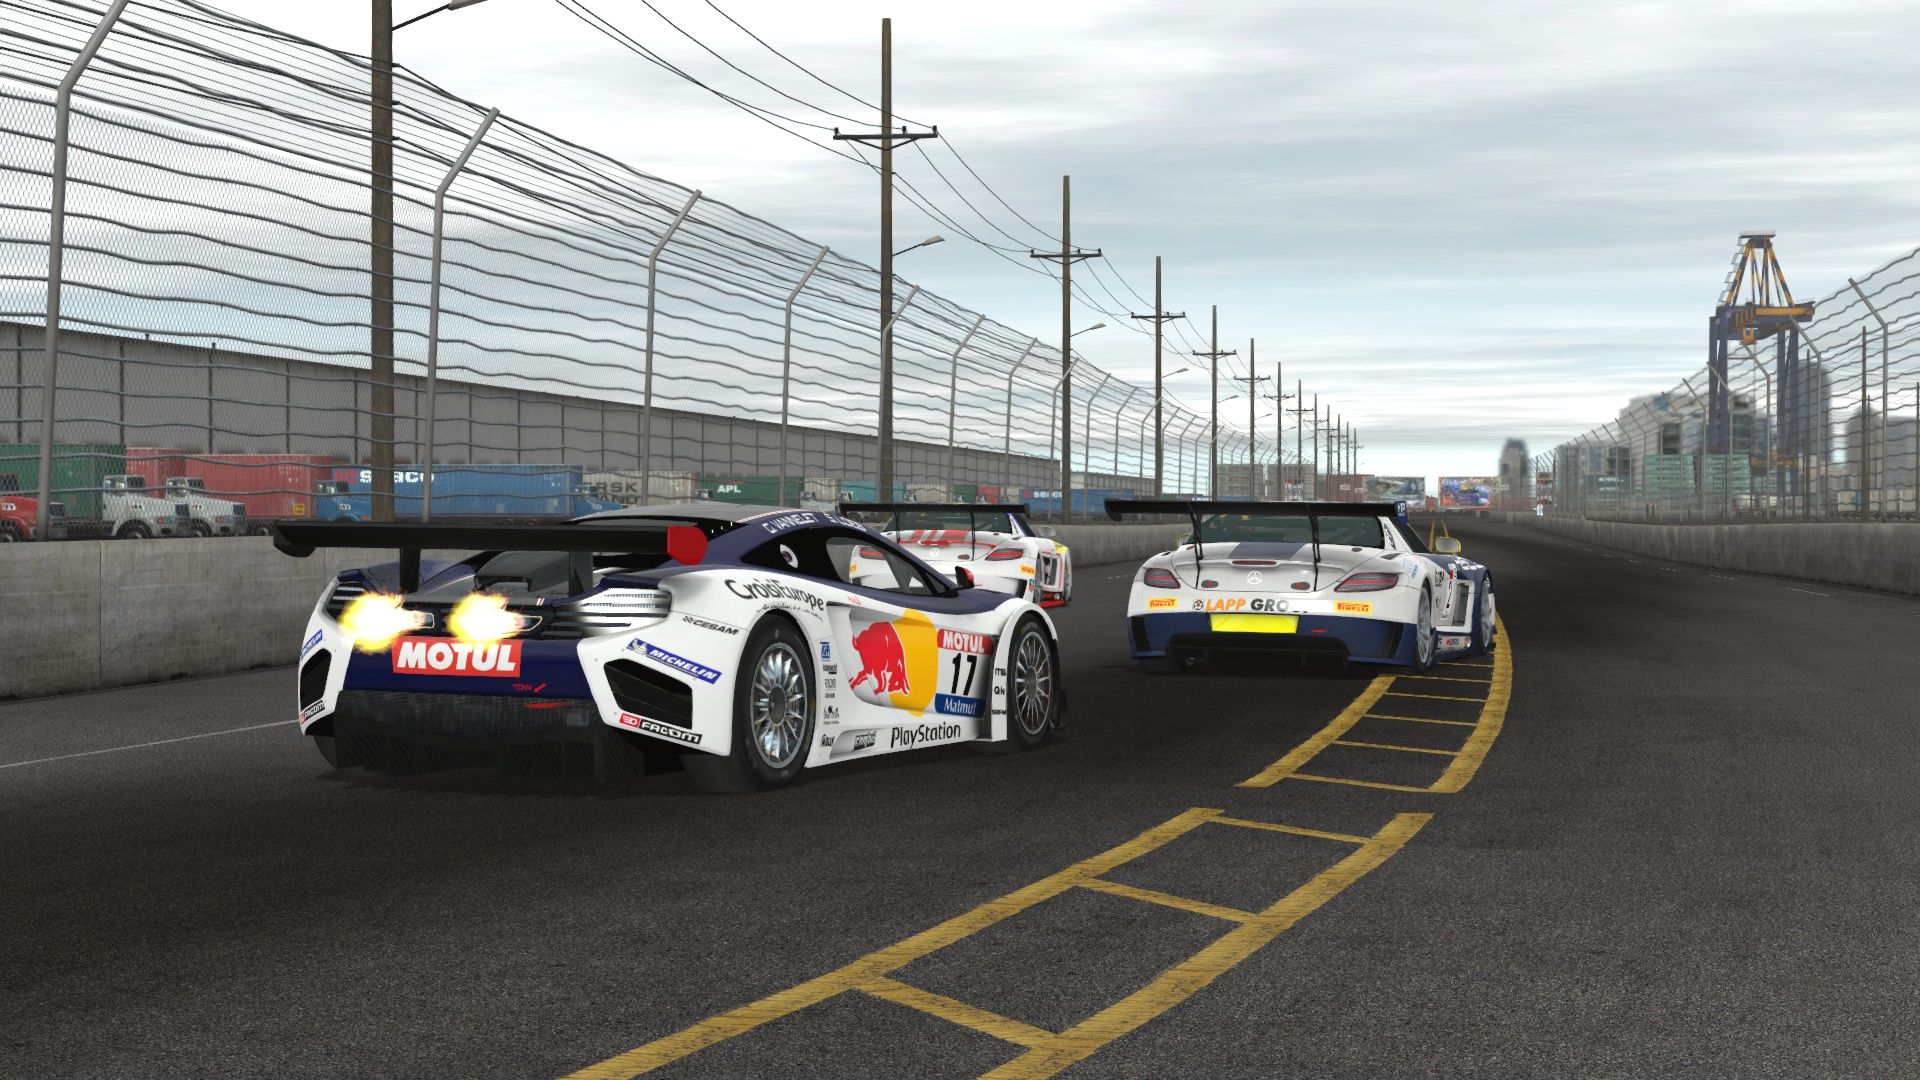 FIA GT3 for rFactor 2 – New Version Released – VirtualR net